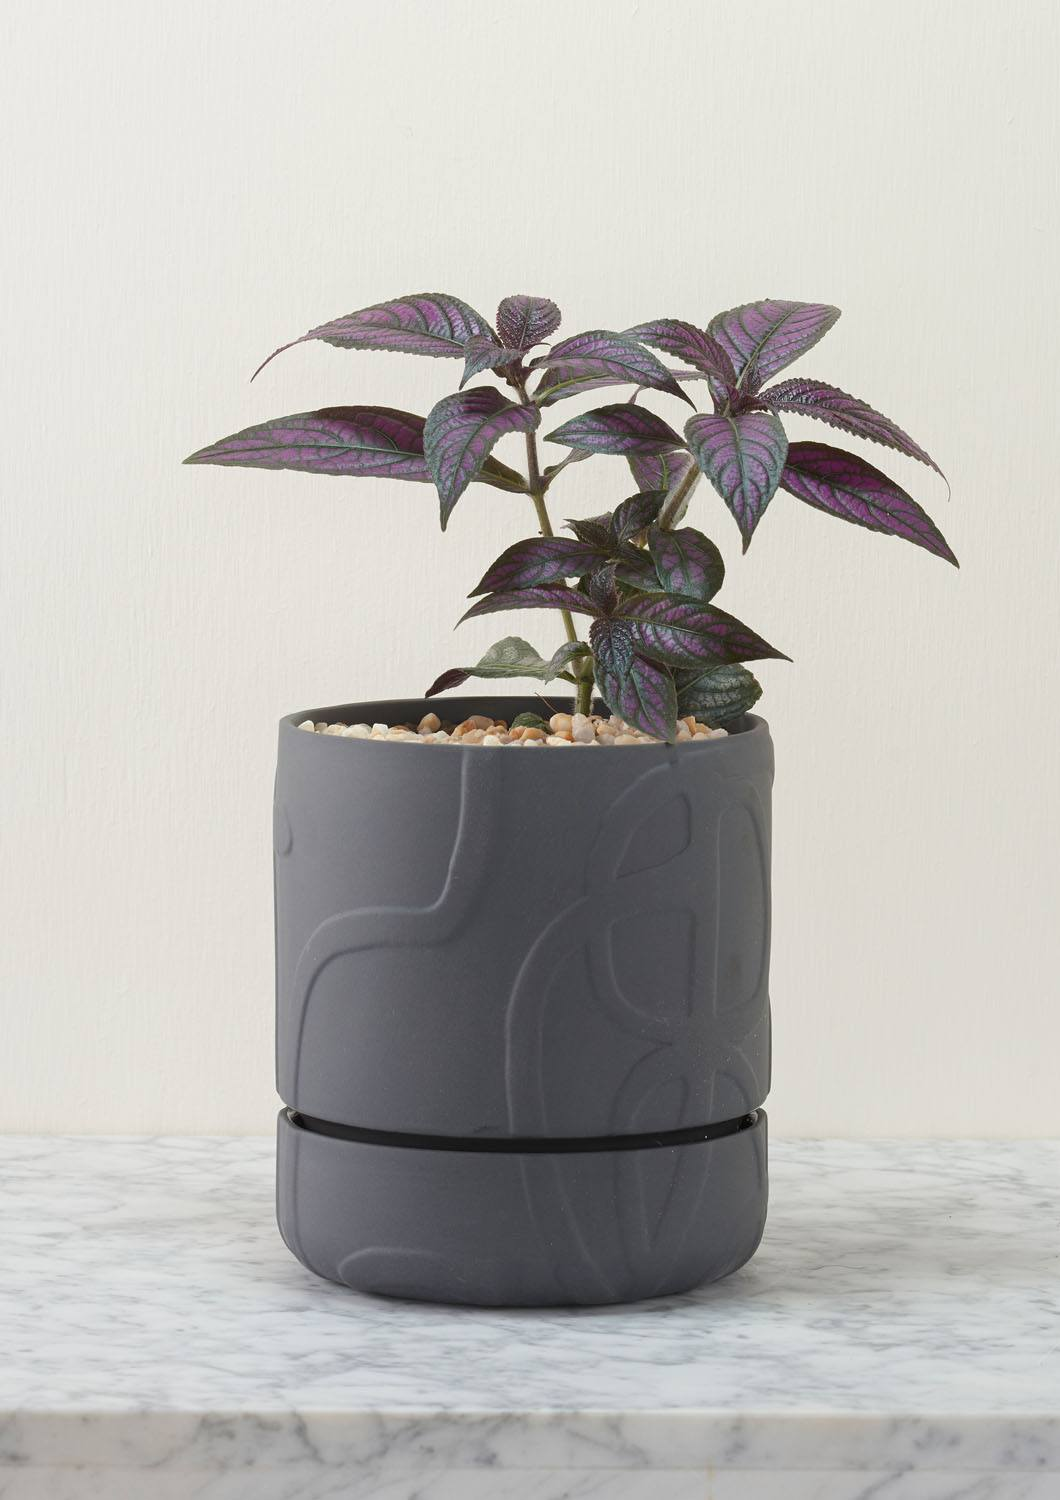 Angus & Celeste Abstract Relief Plant Pot - Brush Line Thick Charcoal Styled